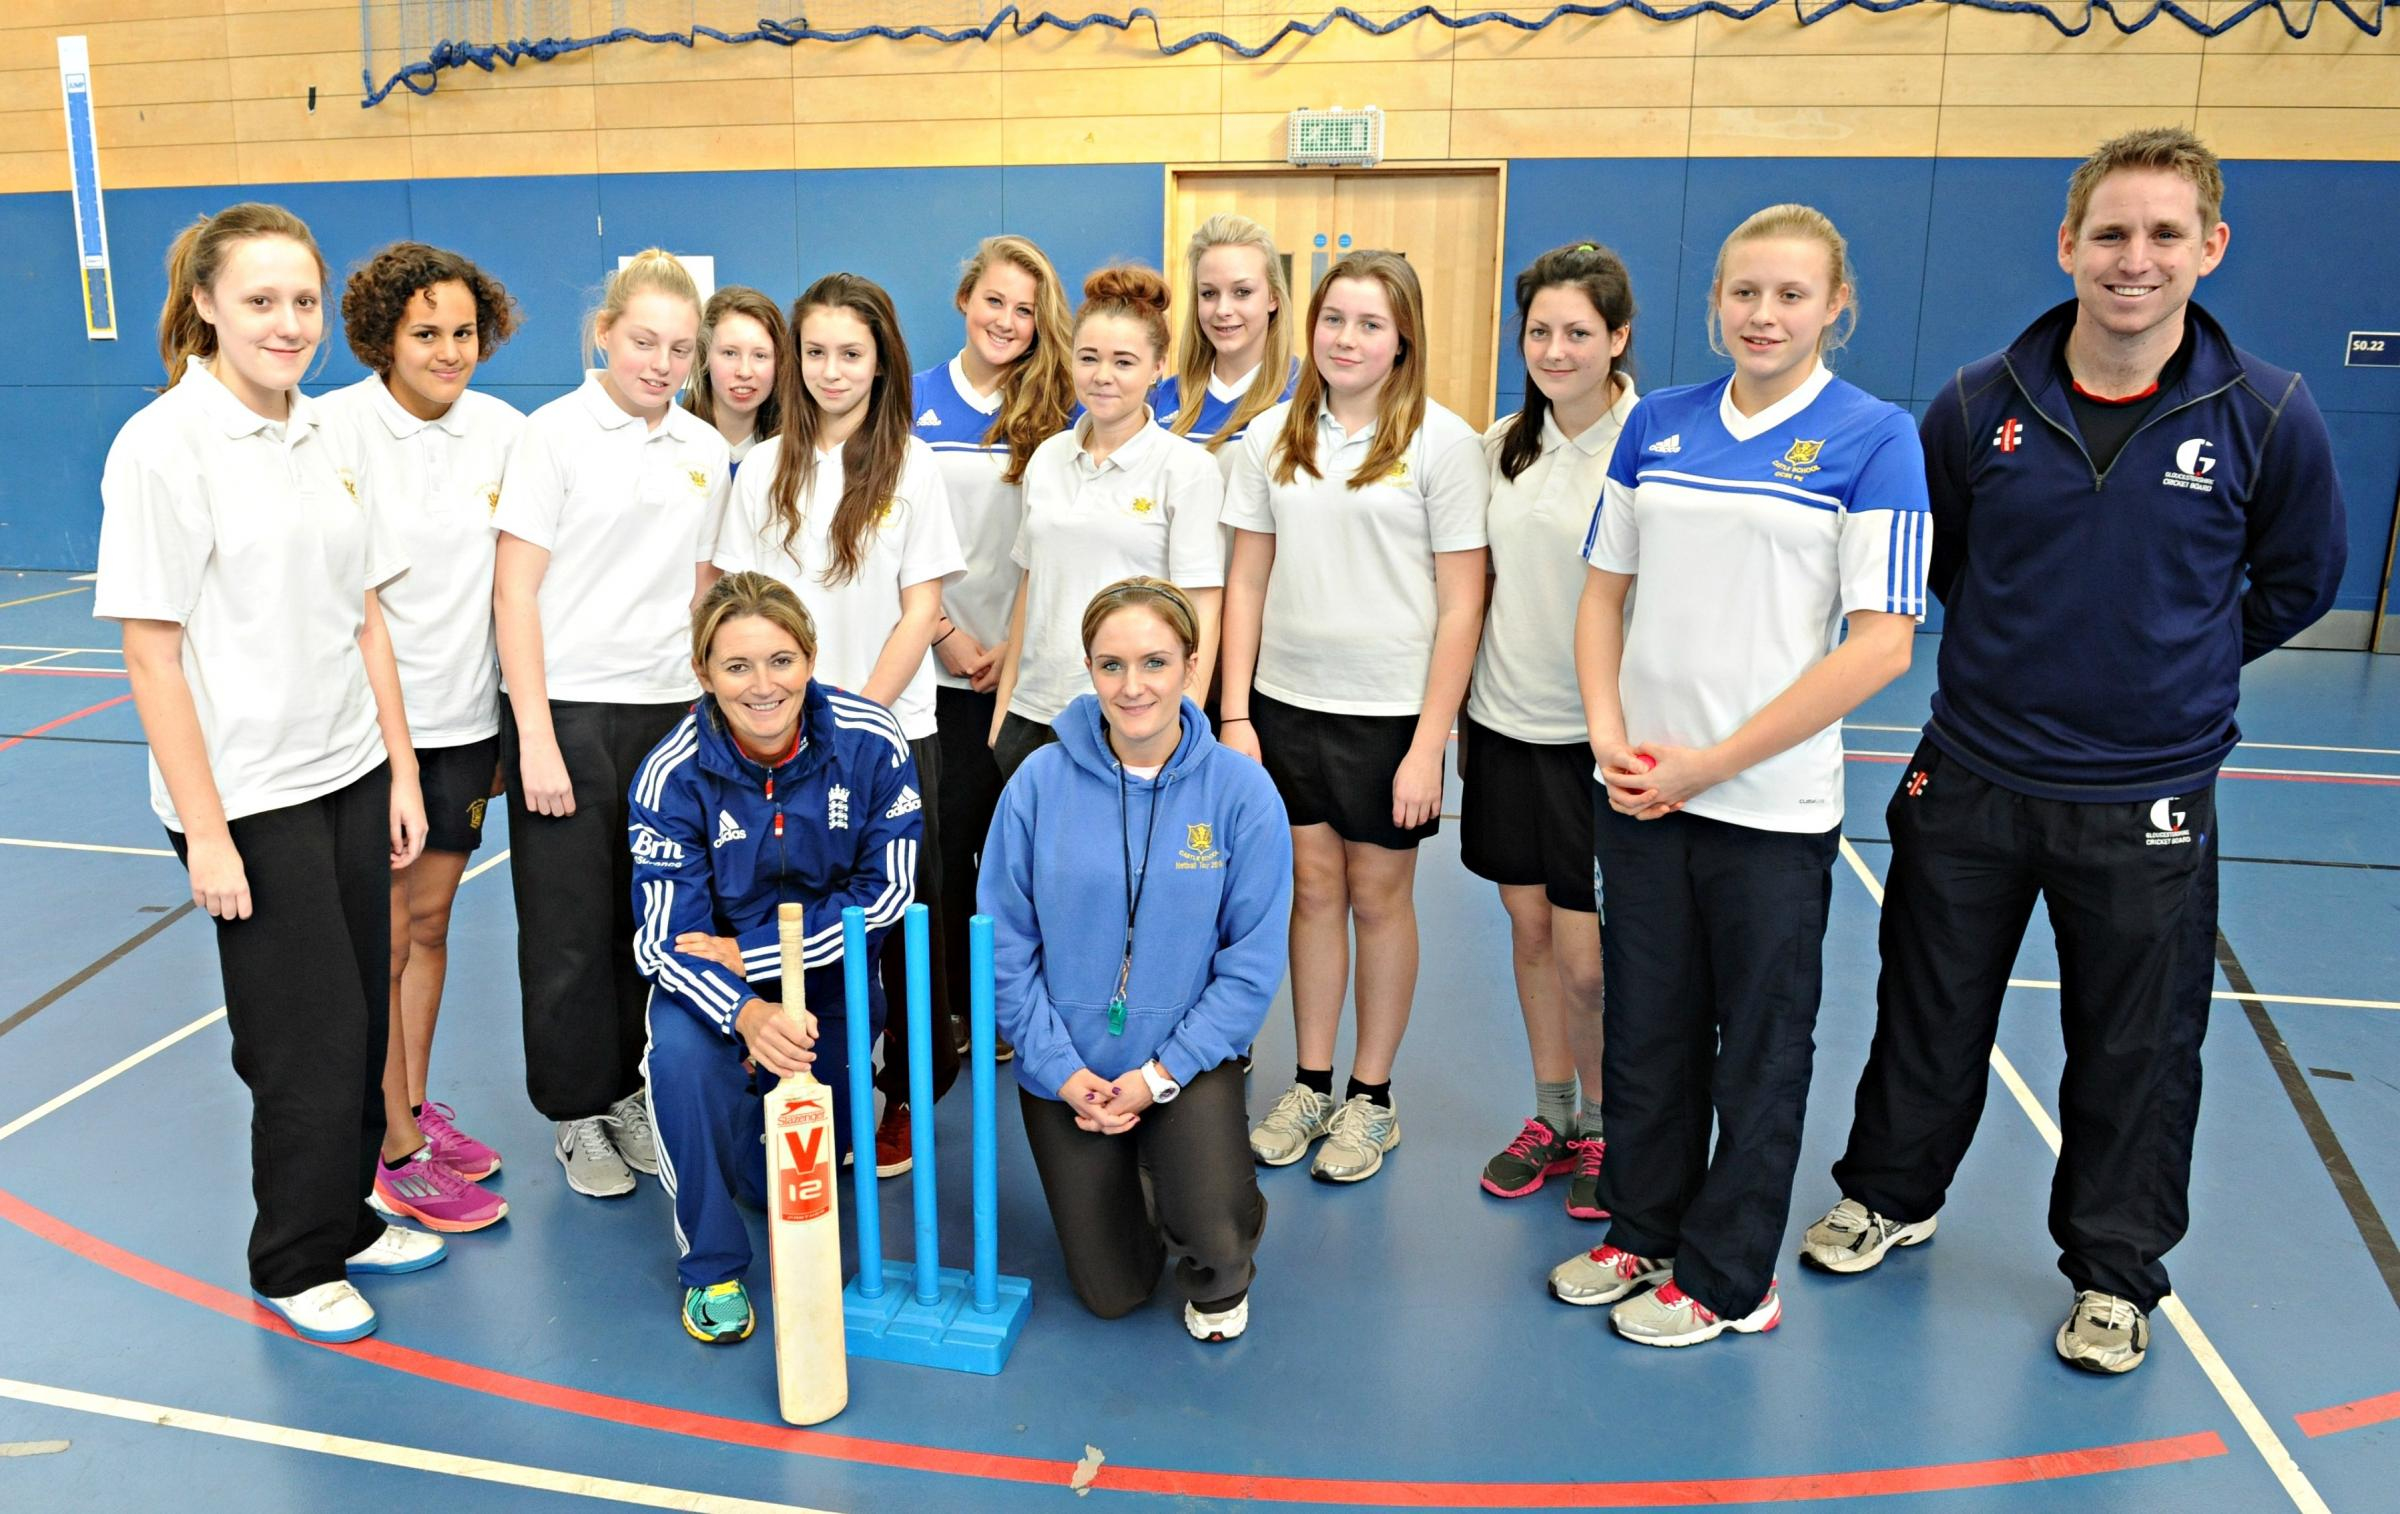 England women's cricket captain Charlotte Edwards with Castle School cricket team during the Under 15's Lady Taverners competition in Bristol (3943270)